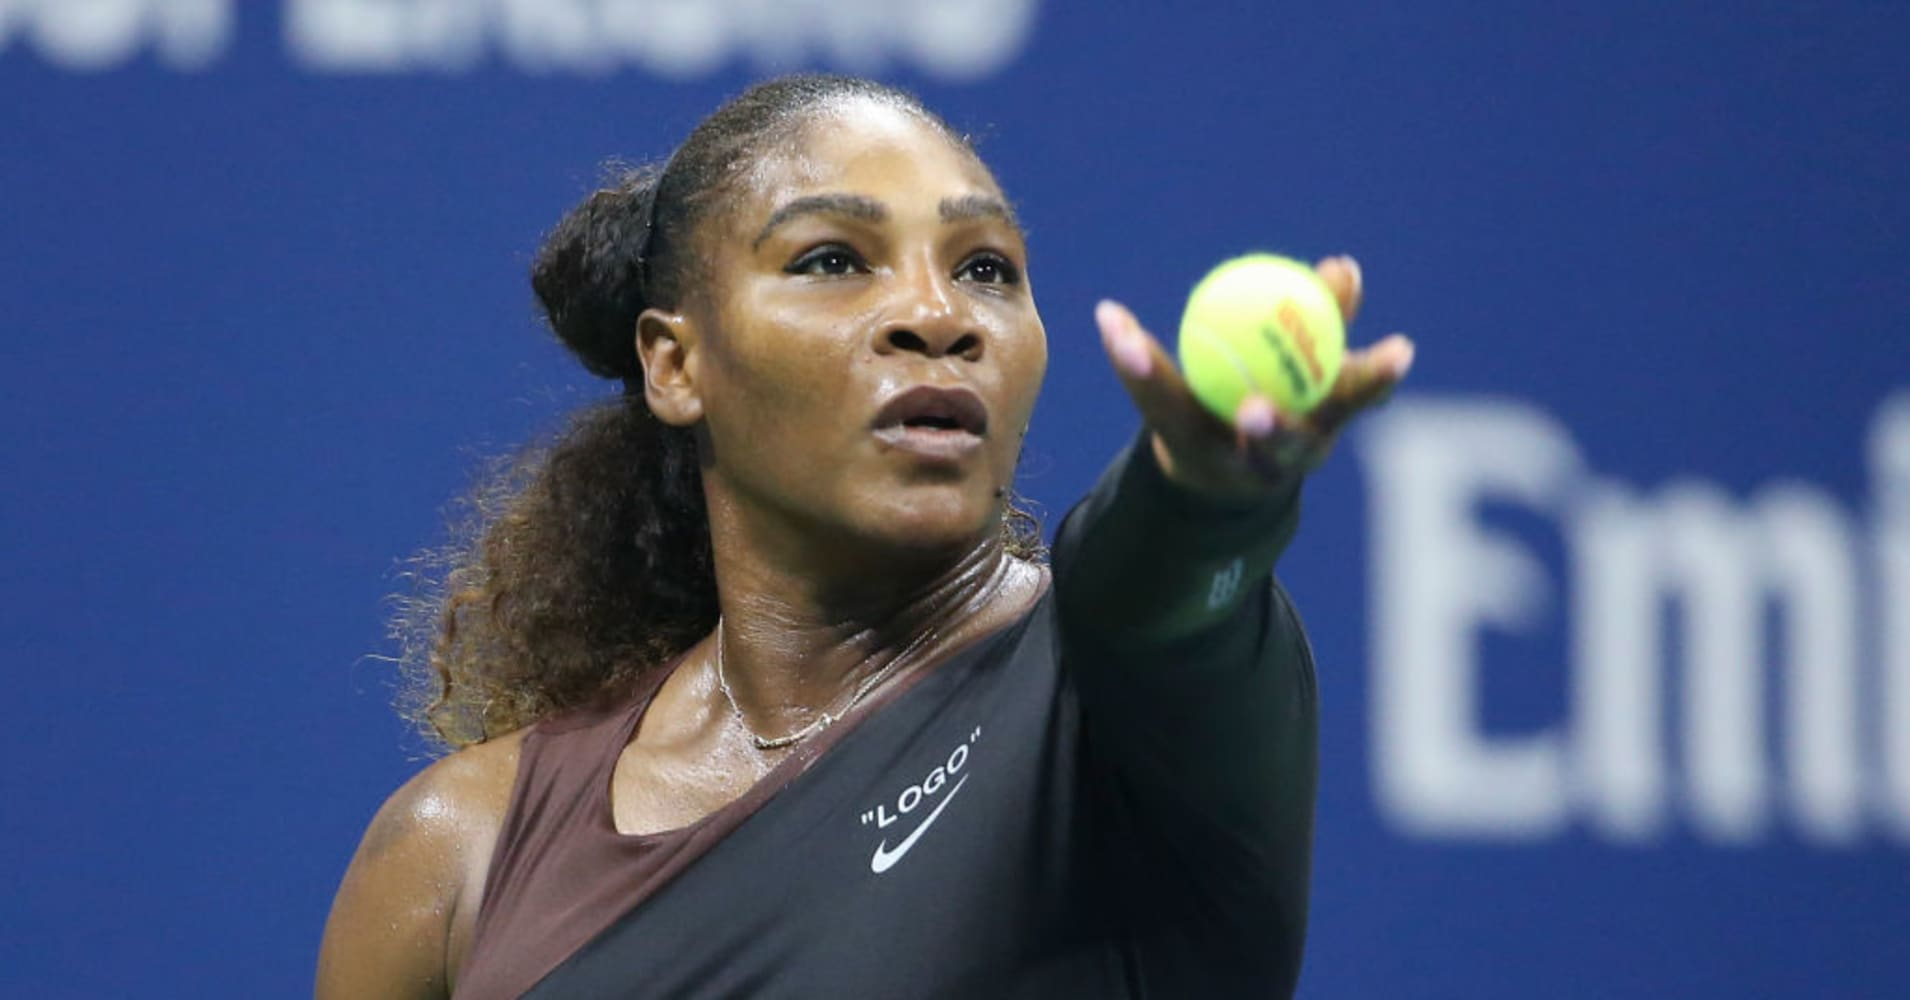 Serena Williams during day one of the 2018 US Open in Flushing Meadows, Queens, New York City.